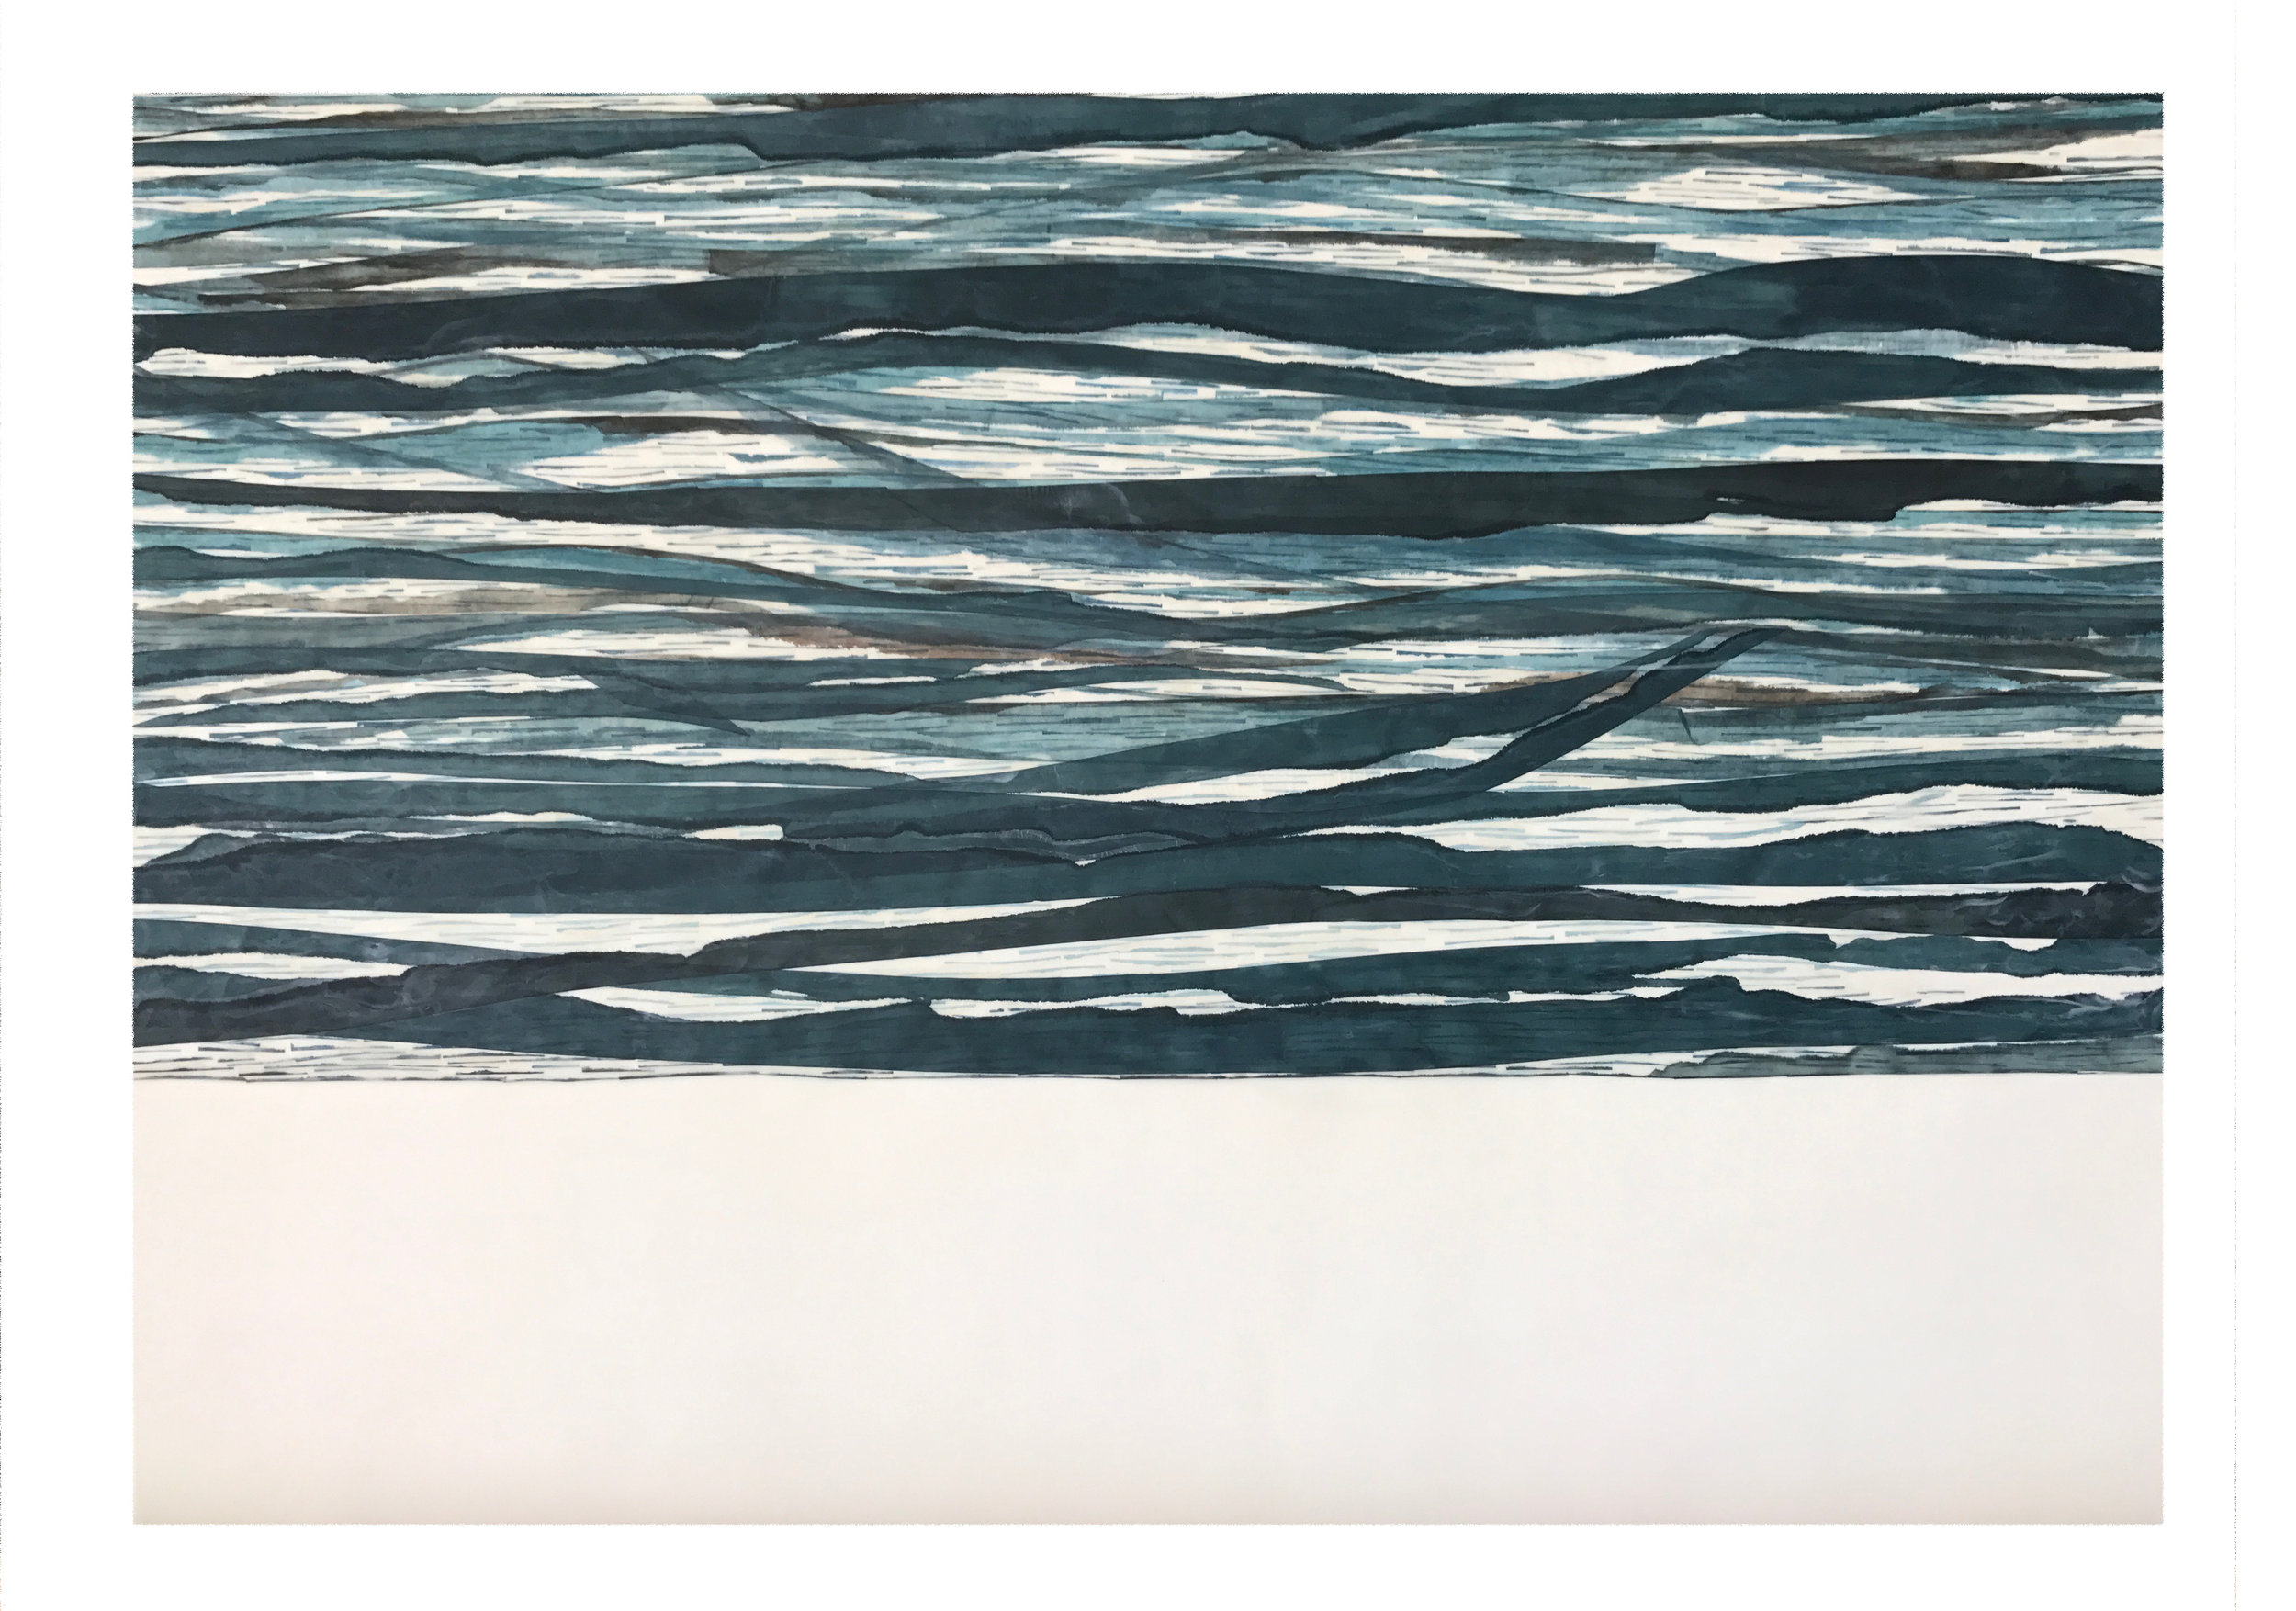 "Swell 2, 2017 Encaustic, Mulberry Paper, Watercolor 40"" x 30"" x 1.5"""